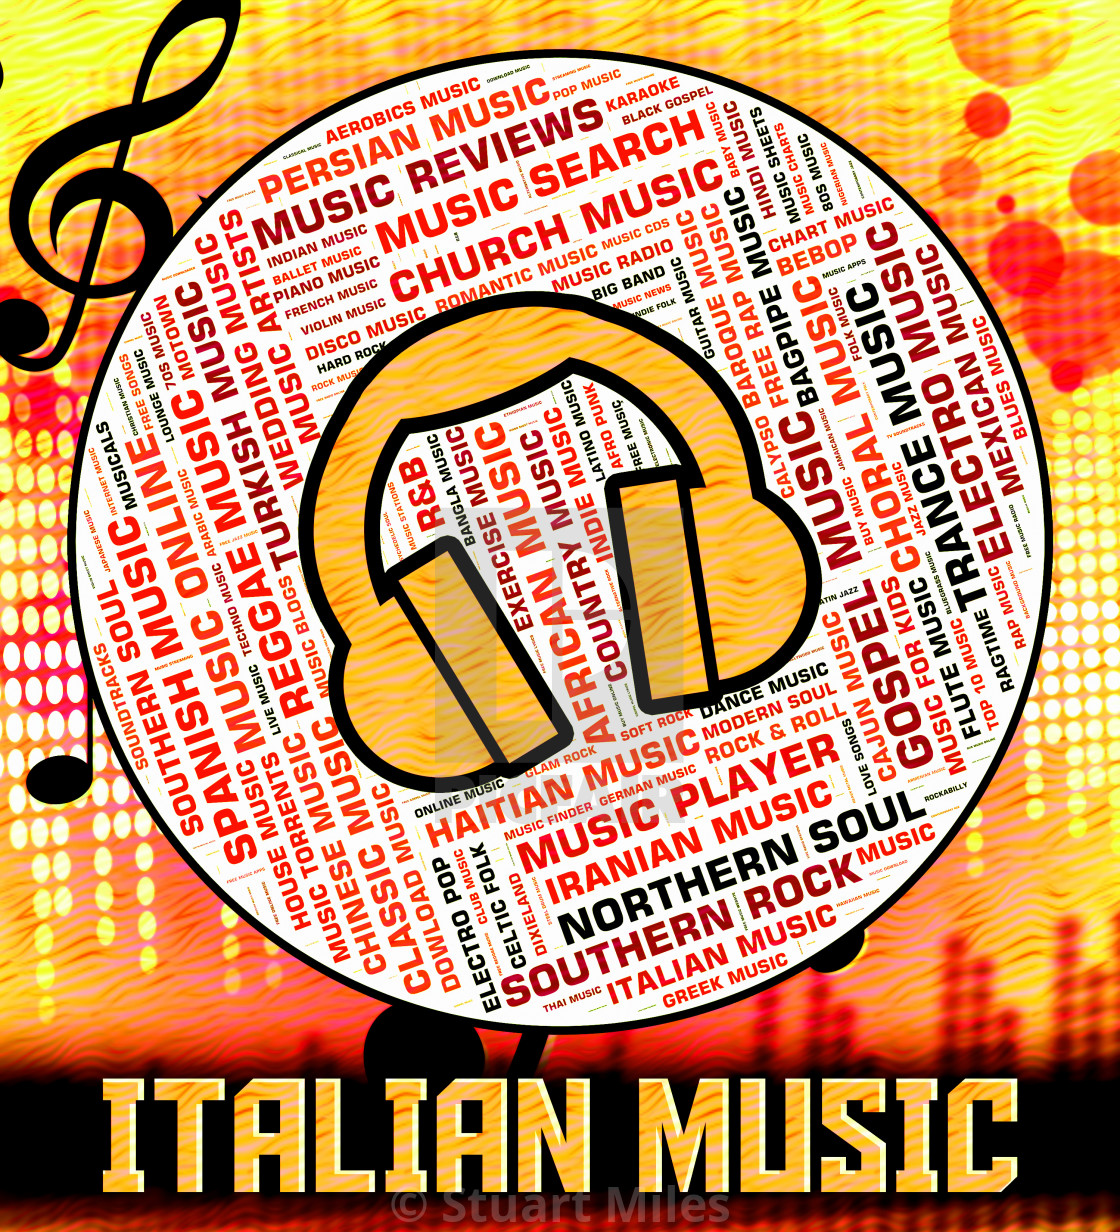 Italian Music Indicates Sound Tracks And Audio - License